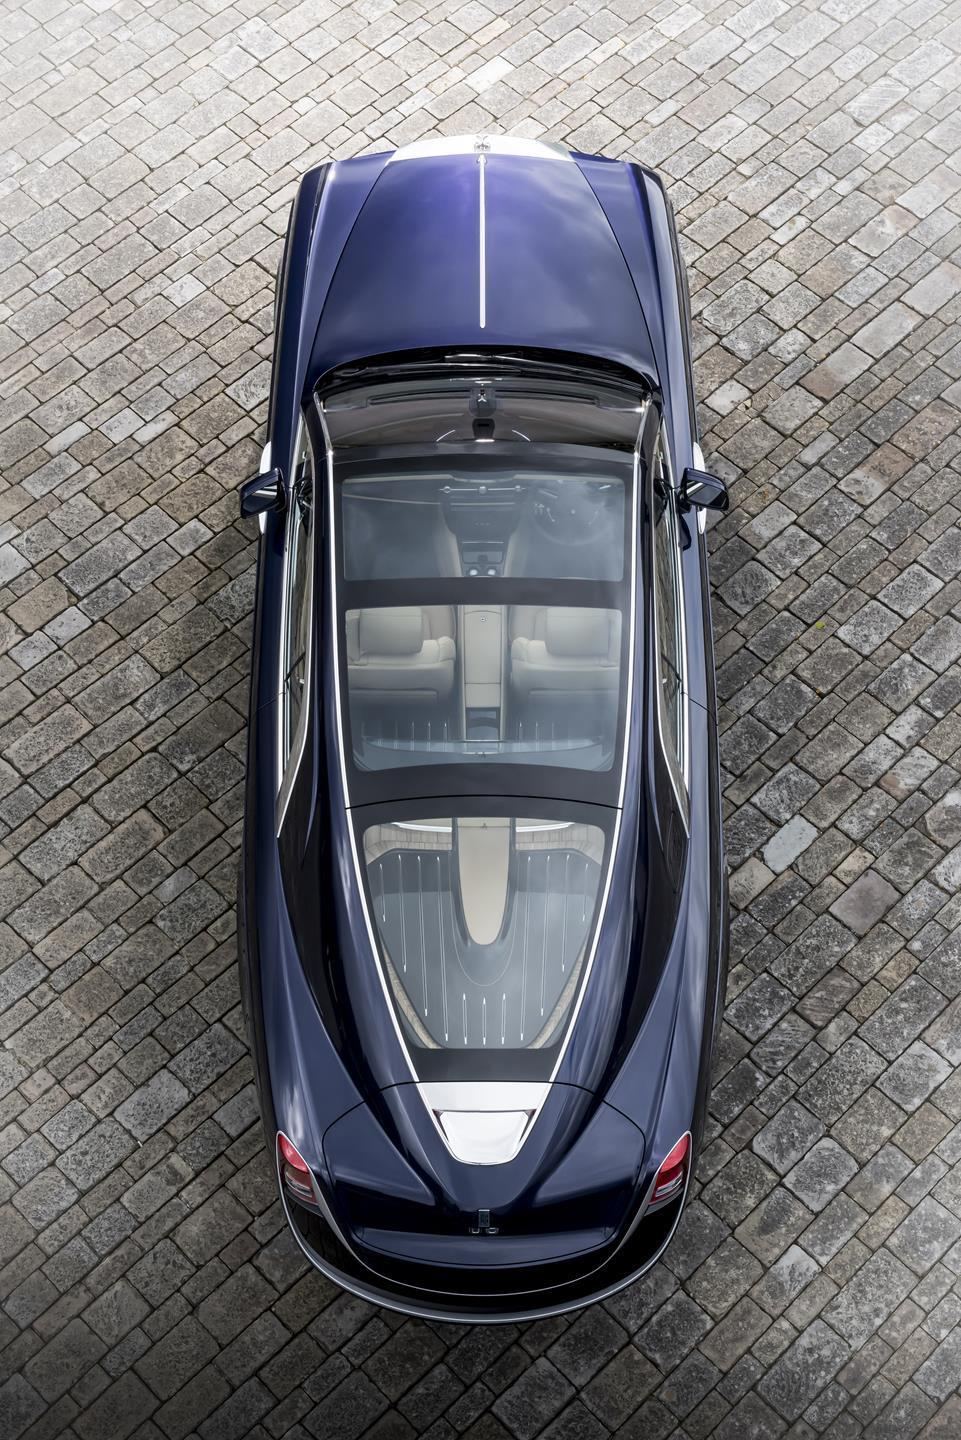 2017 Rolls-Royce Sweptail Wallpaper and Image Gallery